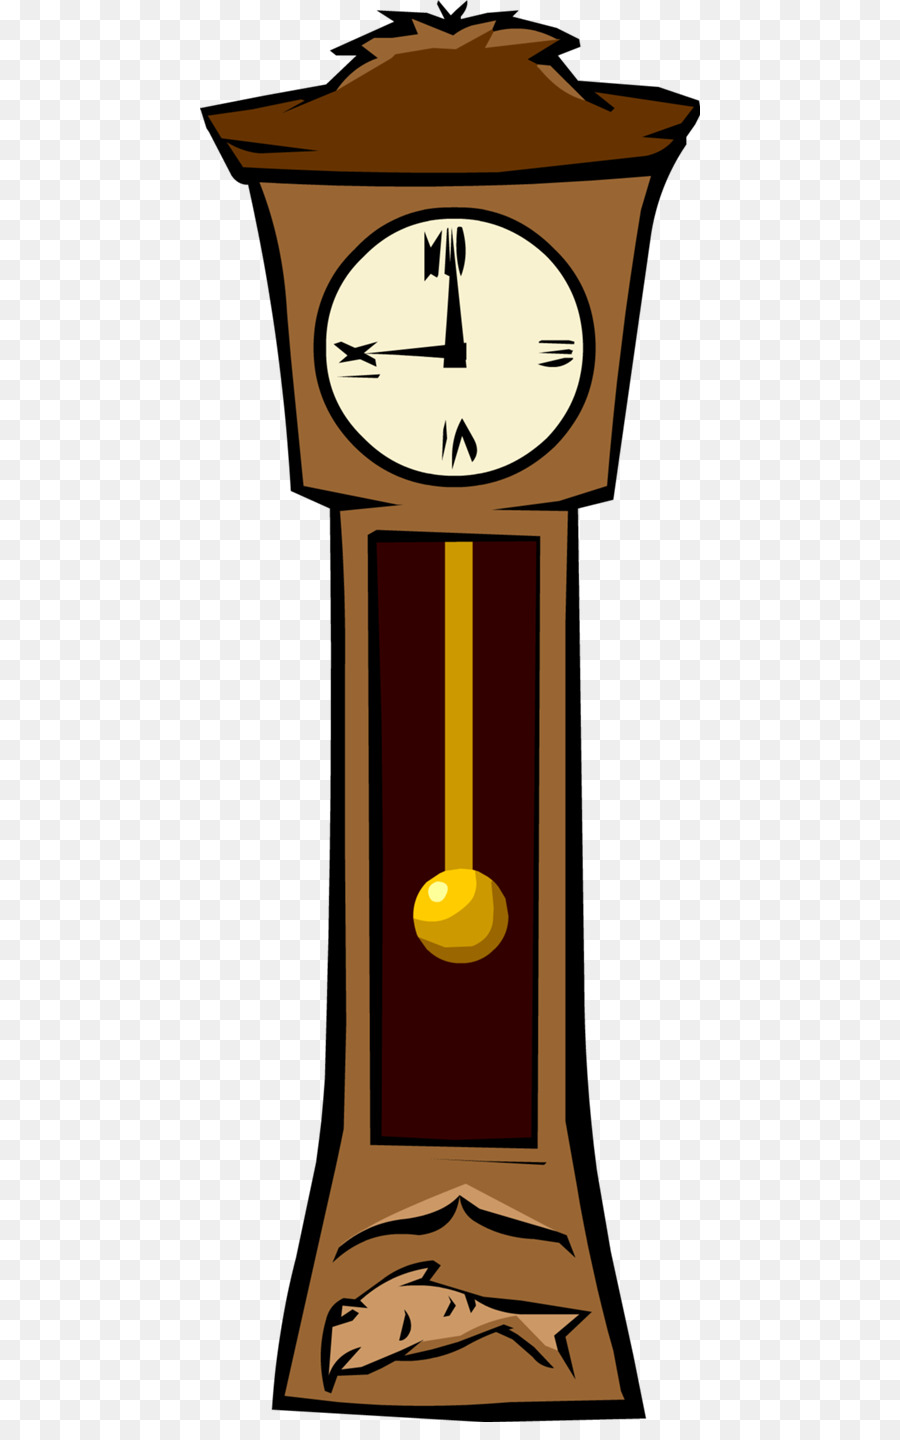 club penguin longcase clock clip art cartoon grandfather cliparts rh kisspng com free grandfather clock clipart